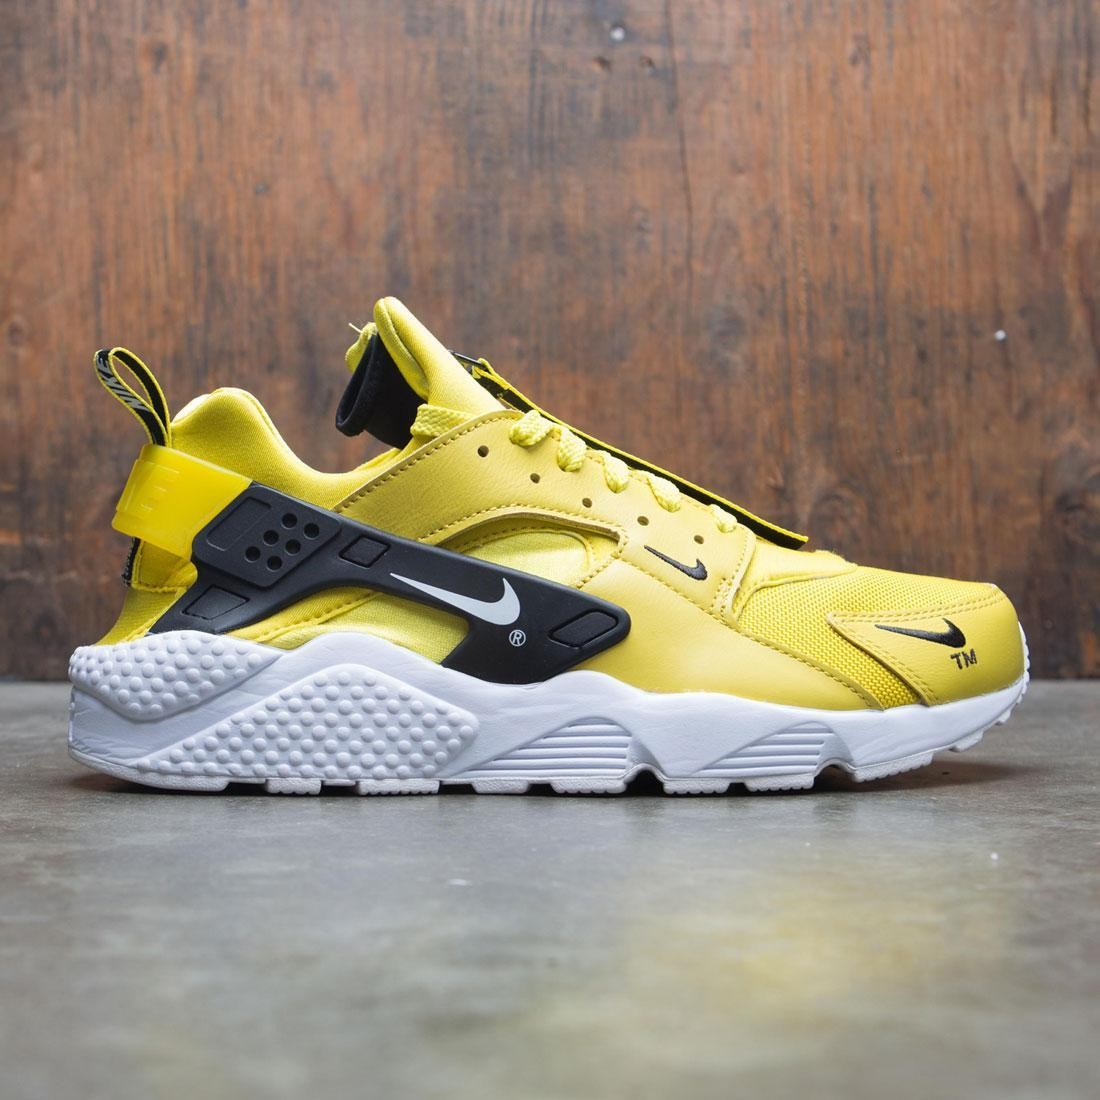 bdc2d434cafc nike men air huarache run premium zip bright citron white black